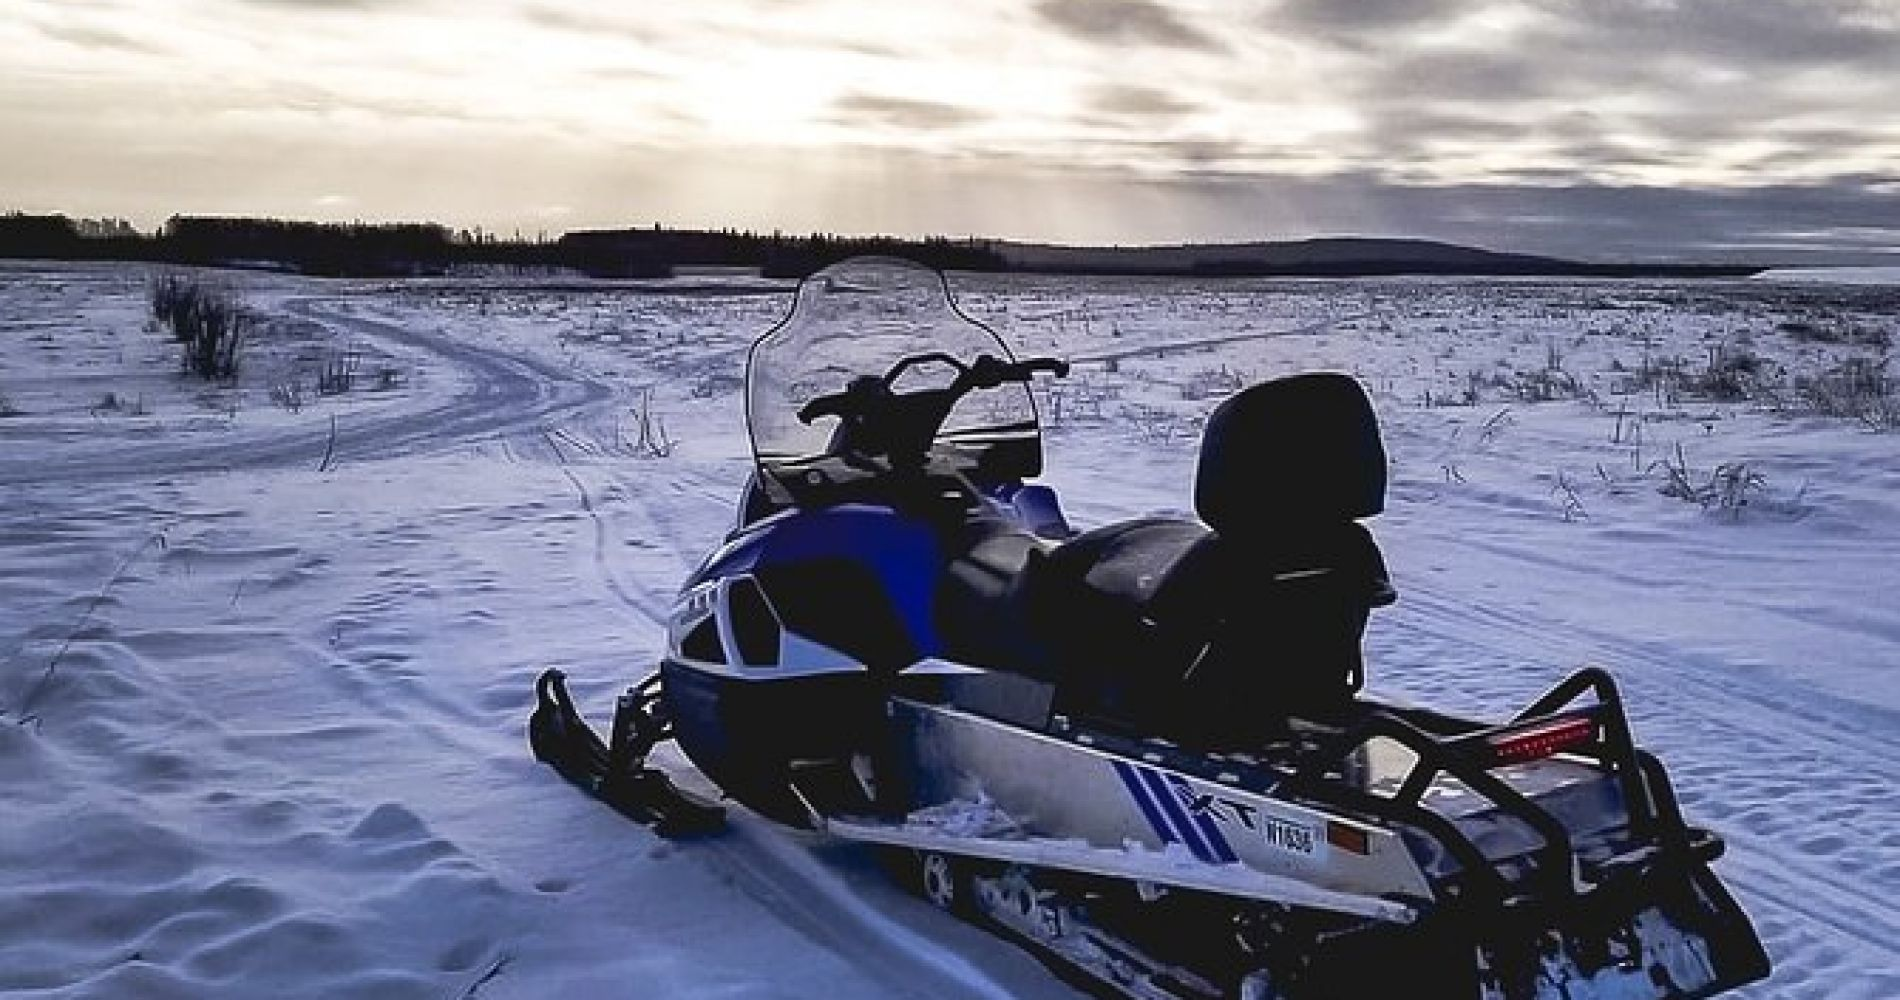 Fairbanks Snowmobile Adventure from North Pole